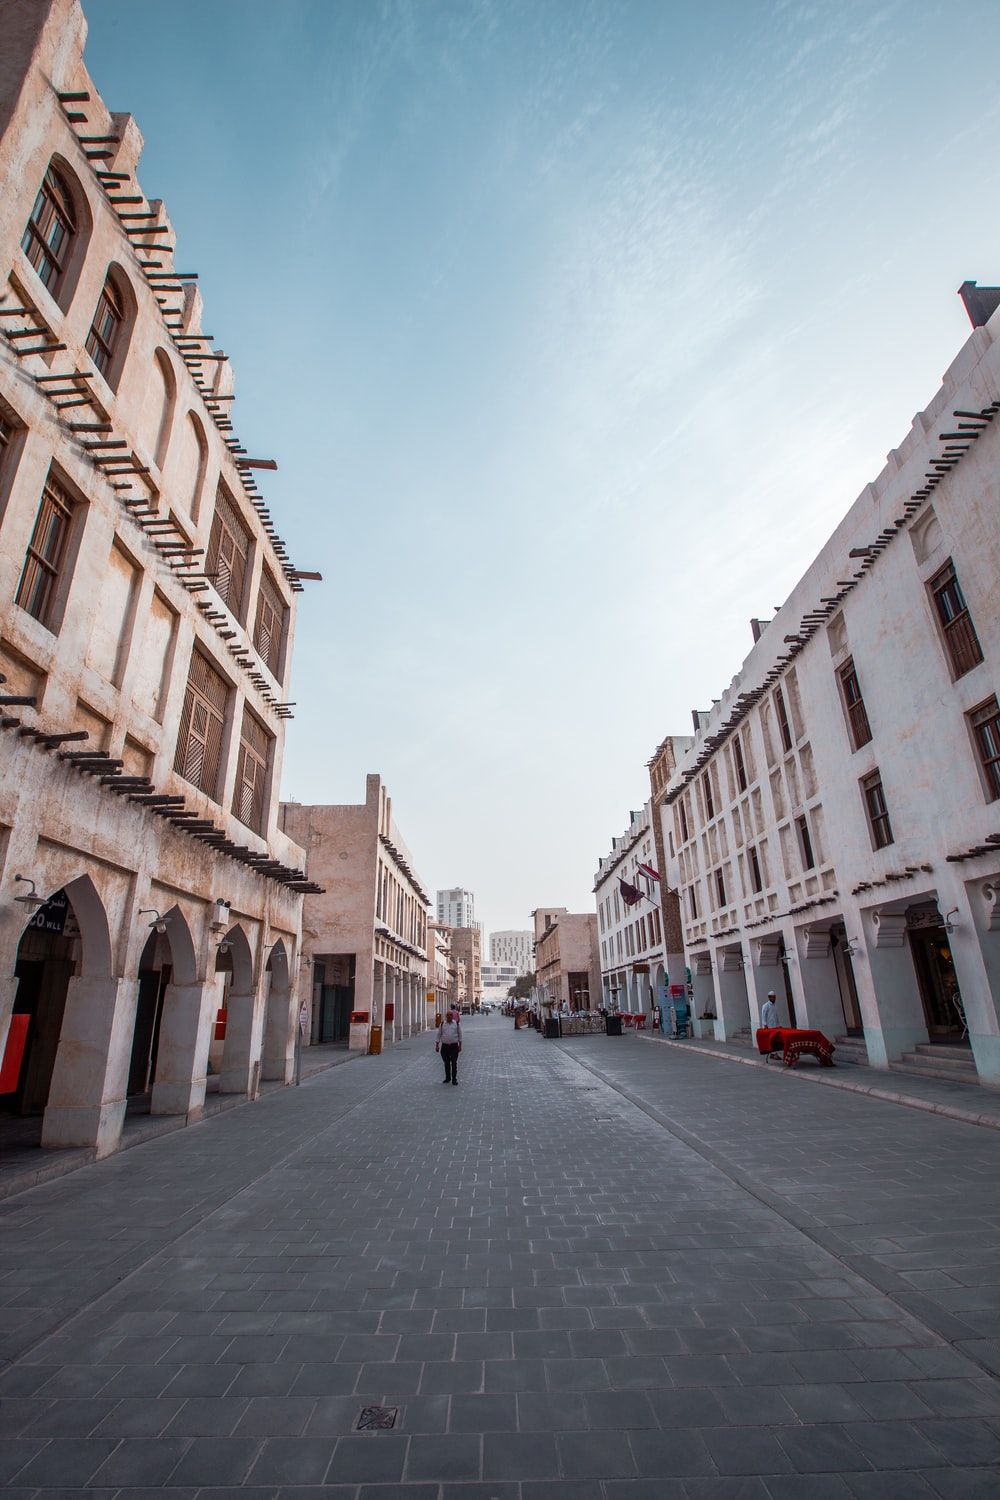 Souq Waqif Pictures | Download Free Images on Unsplash